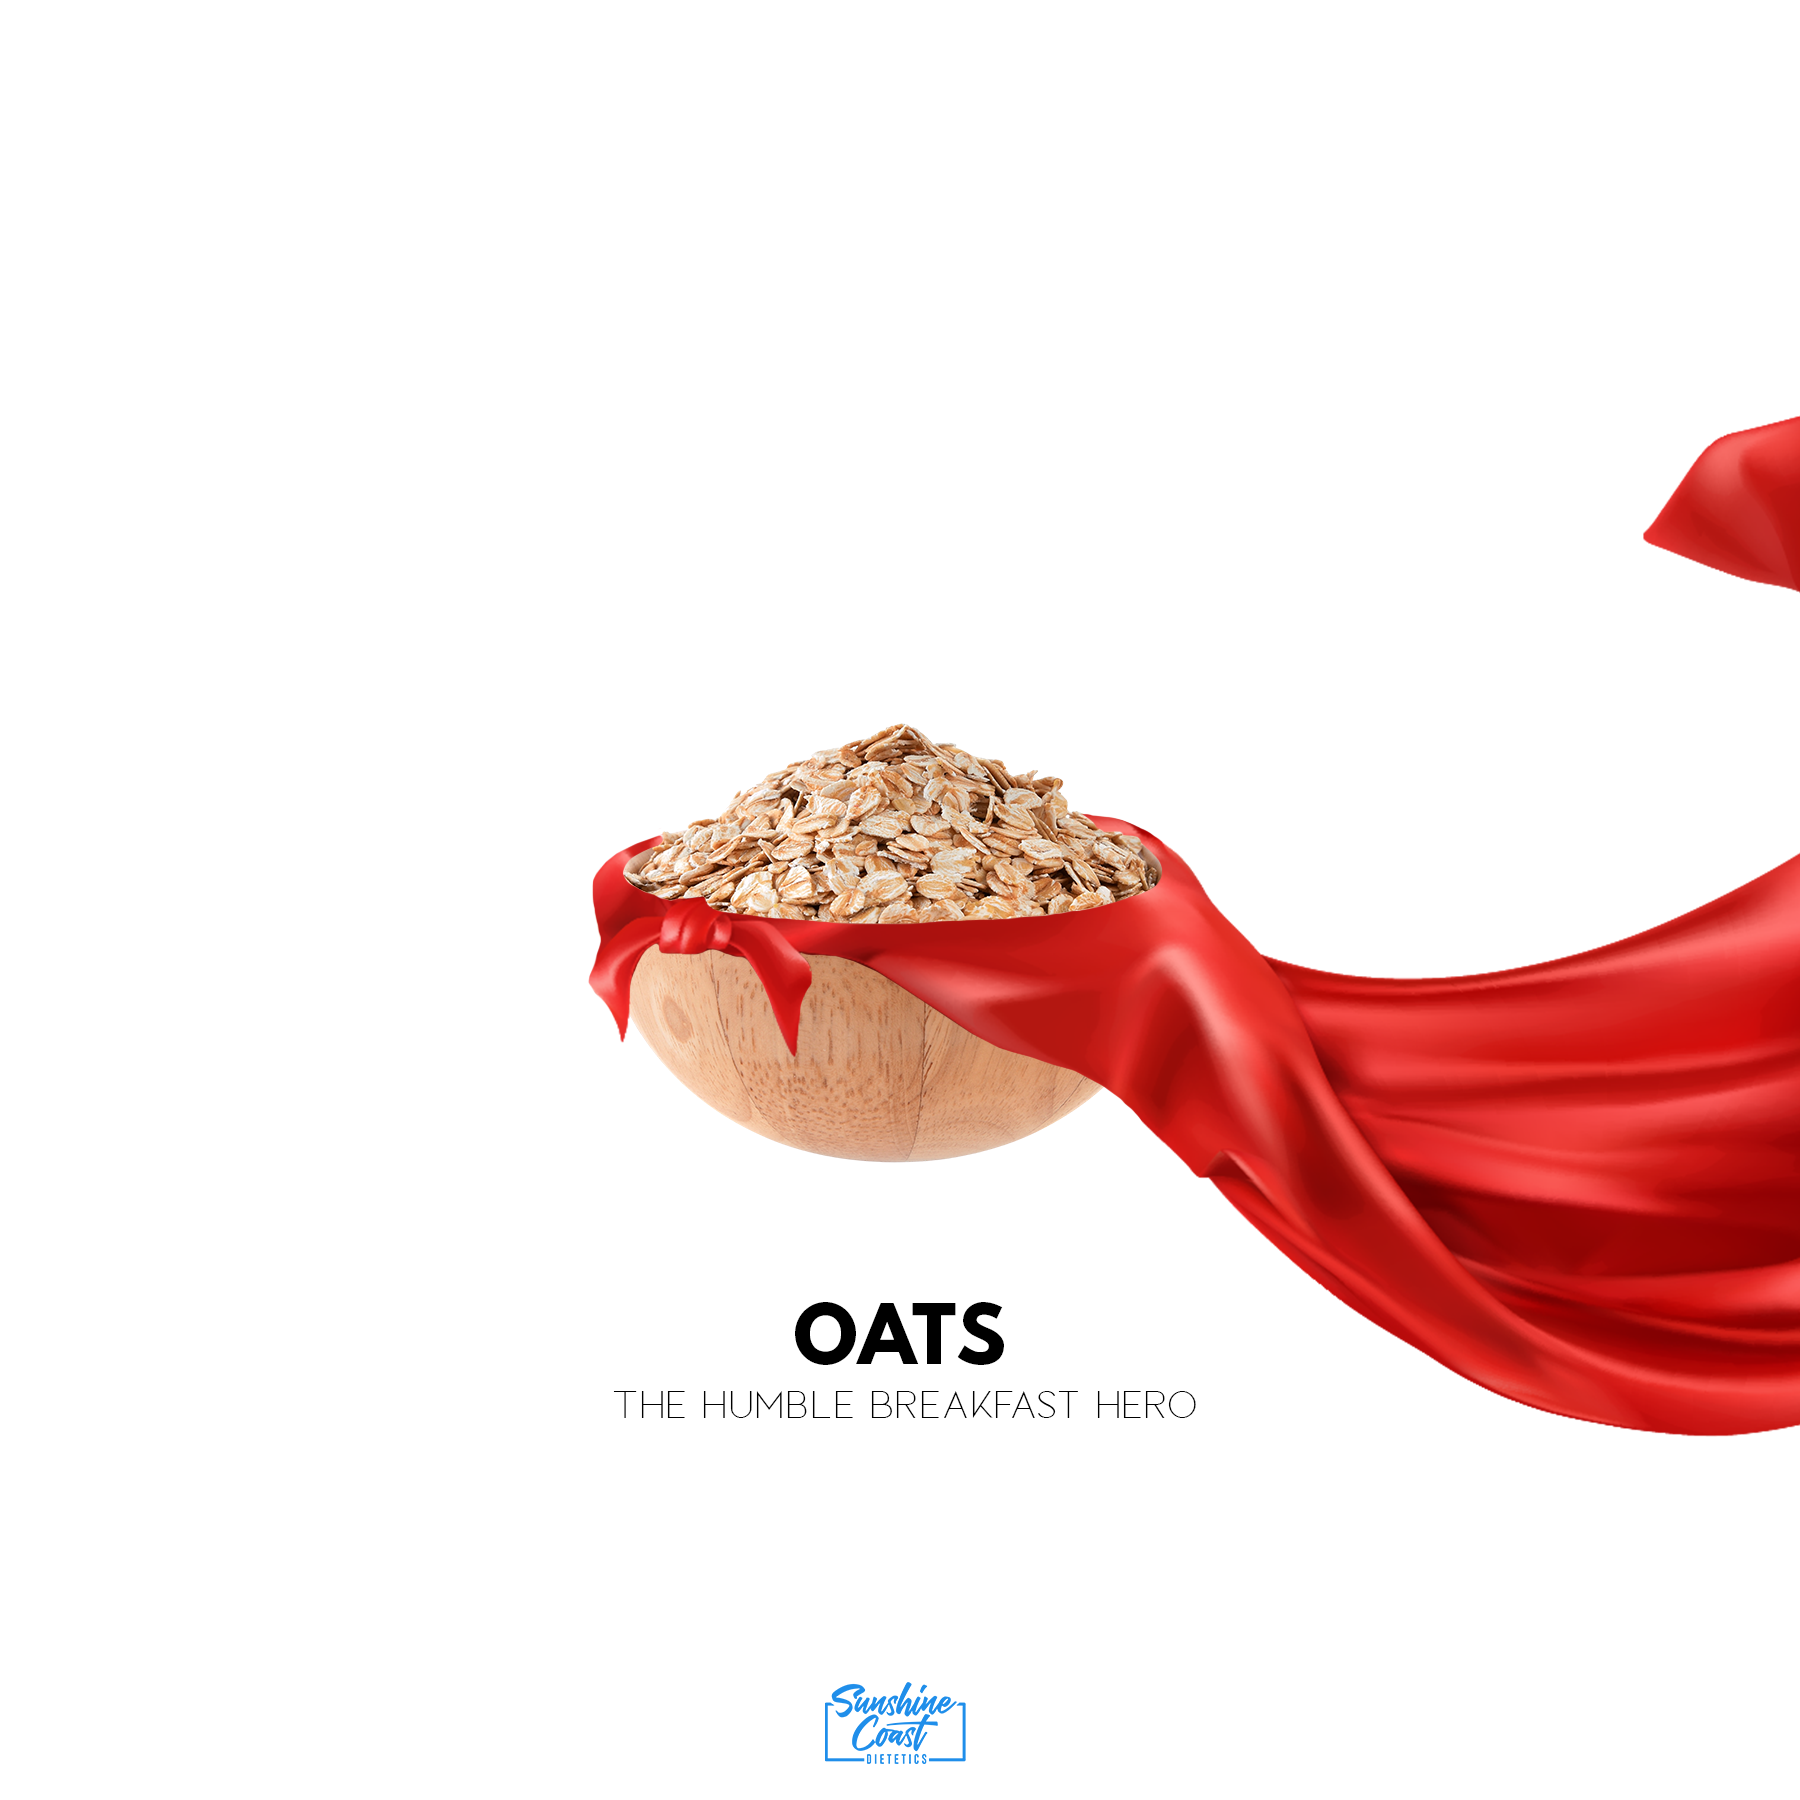 Oats – The Humble Breakfast Hero